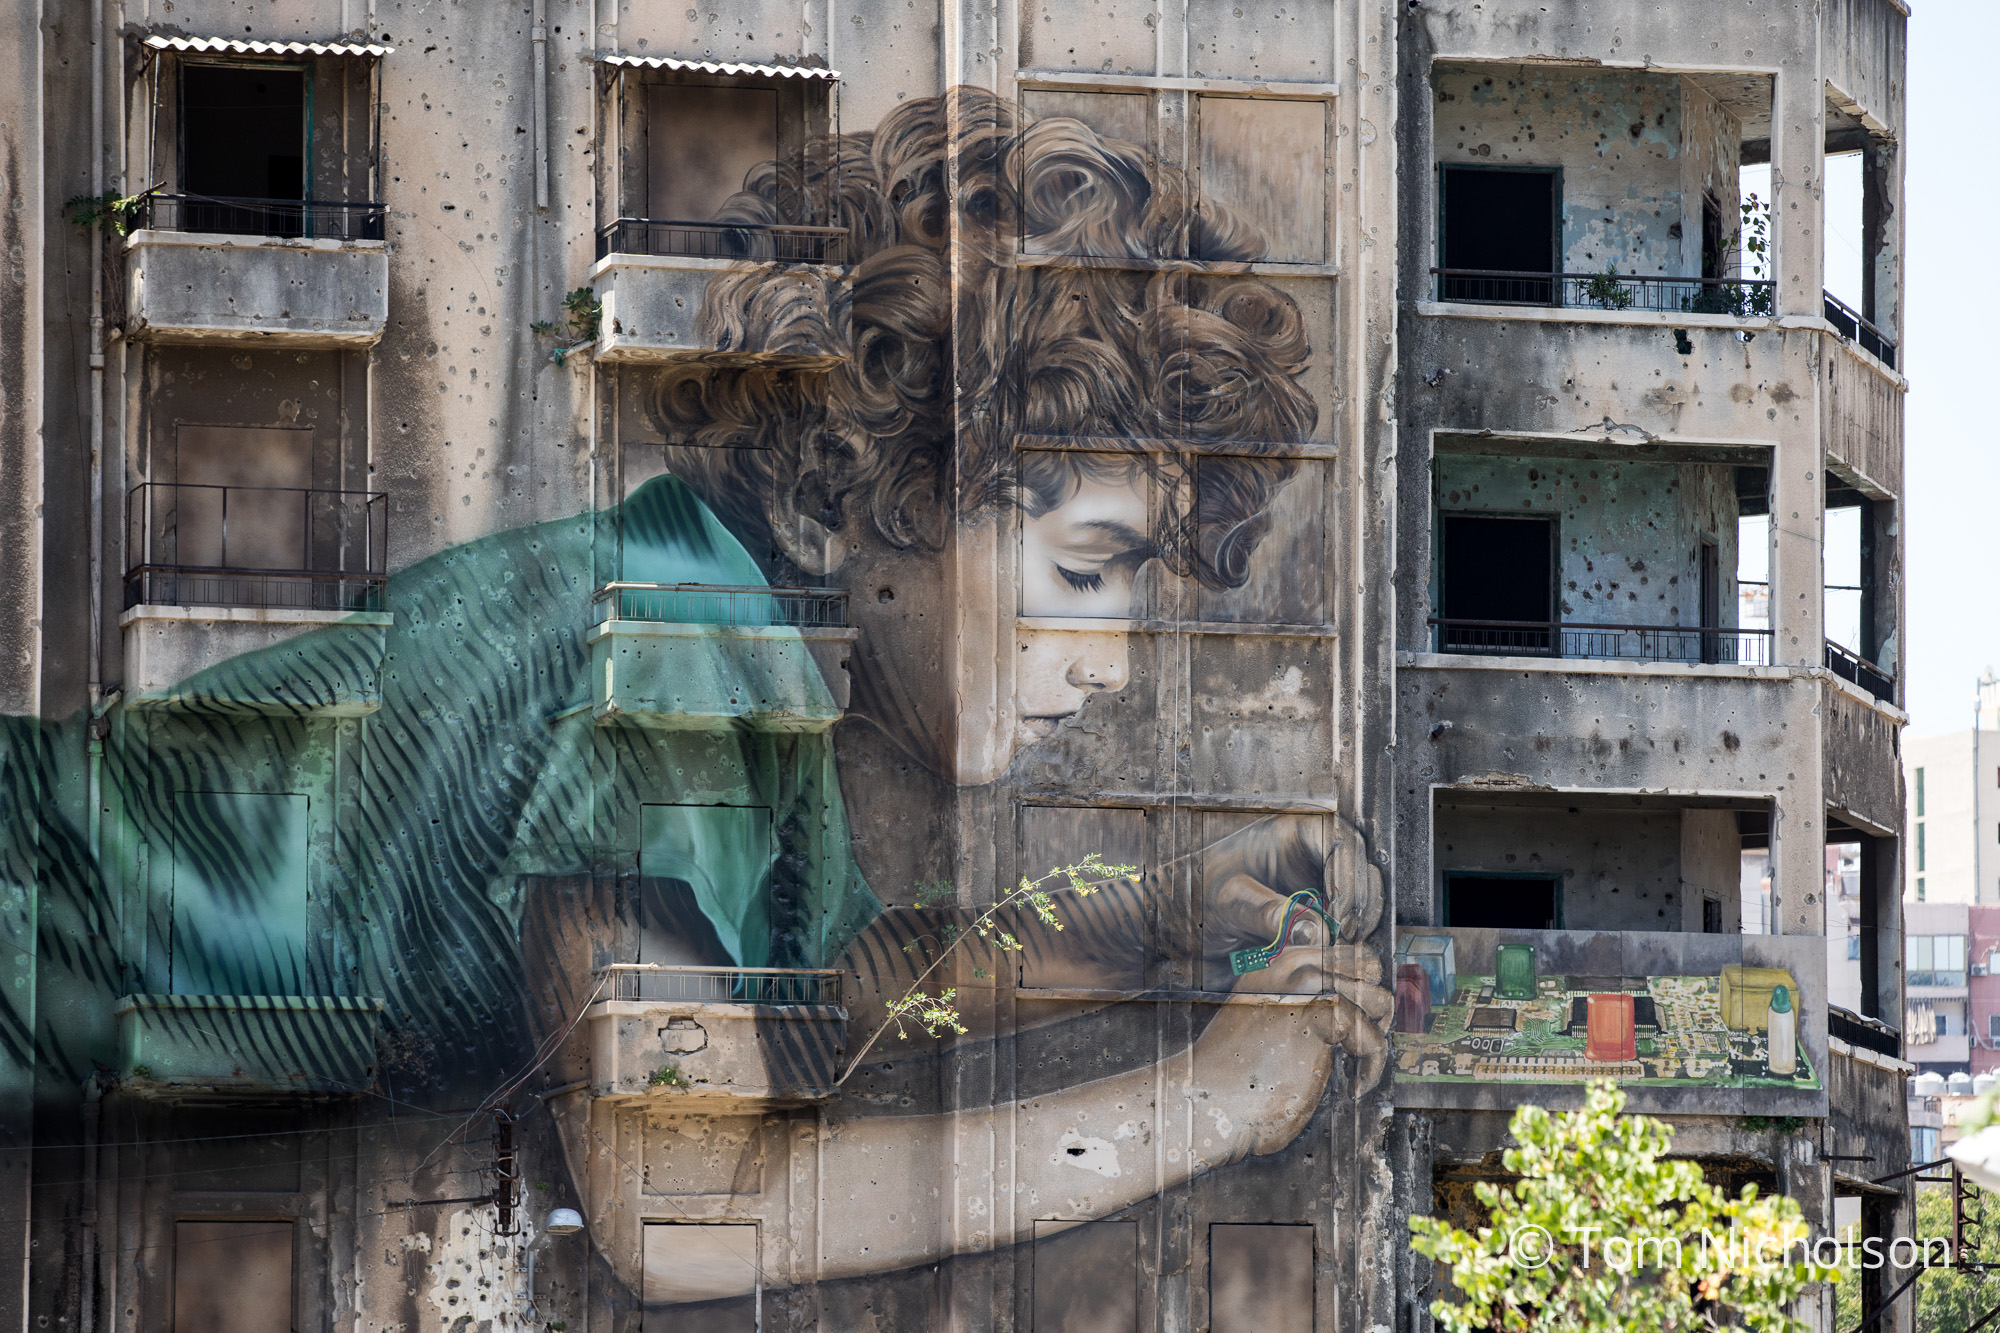 ©2018 Tom Nicholson. 22/06/2018. Beirut, Lebanon. Graffiti artwork by Jorge Rodriguez-Gerada is seen on the side of a building pocked marked by gunfire during the Lebanese civil war from 1975-1990.